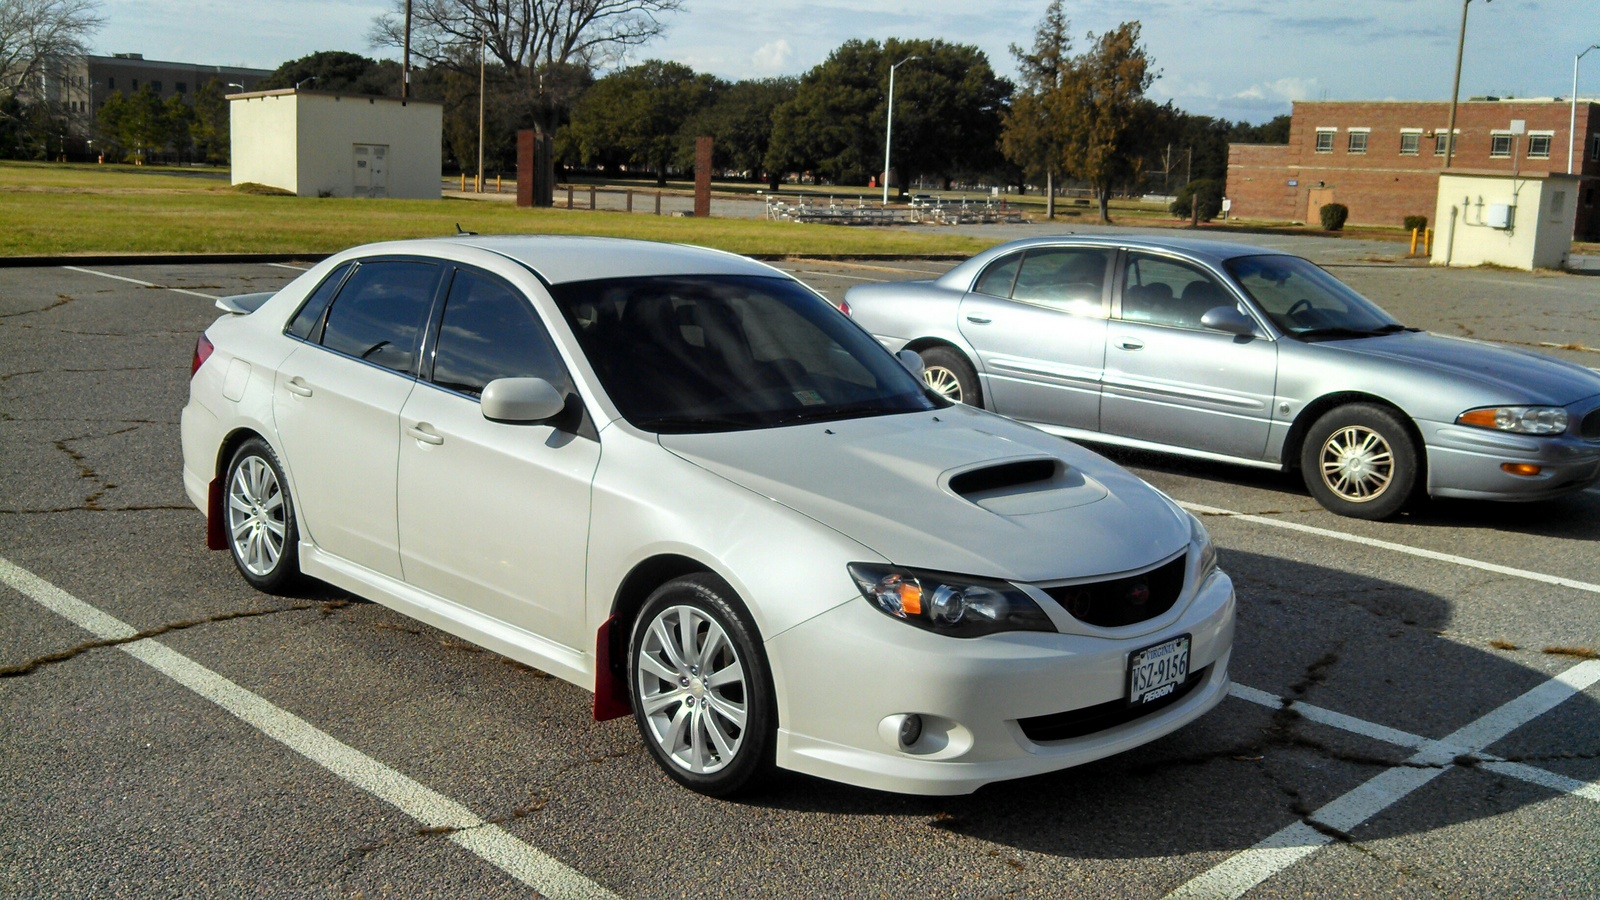 2008 subaru impreza wrx pictures cargurus. Black Bedroom Furniture Sets. Home Design Ideas